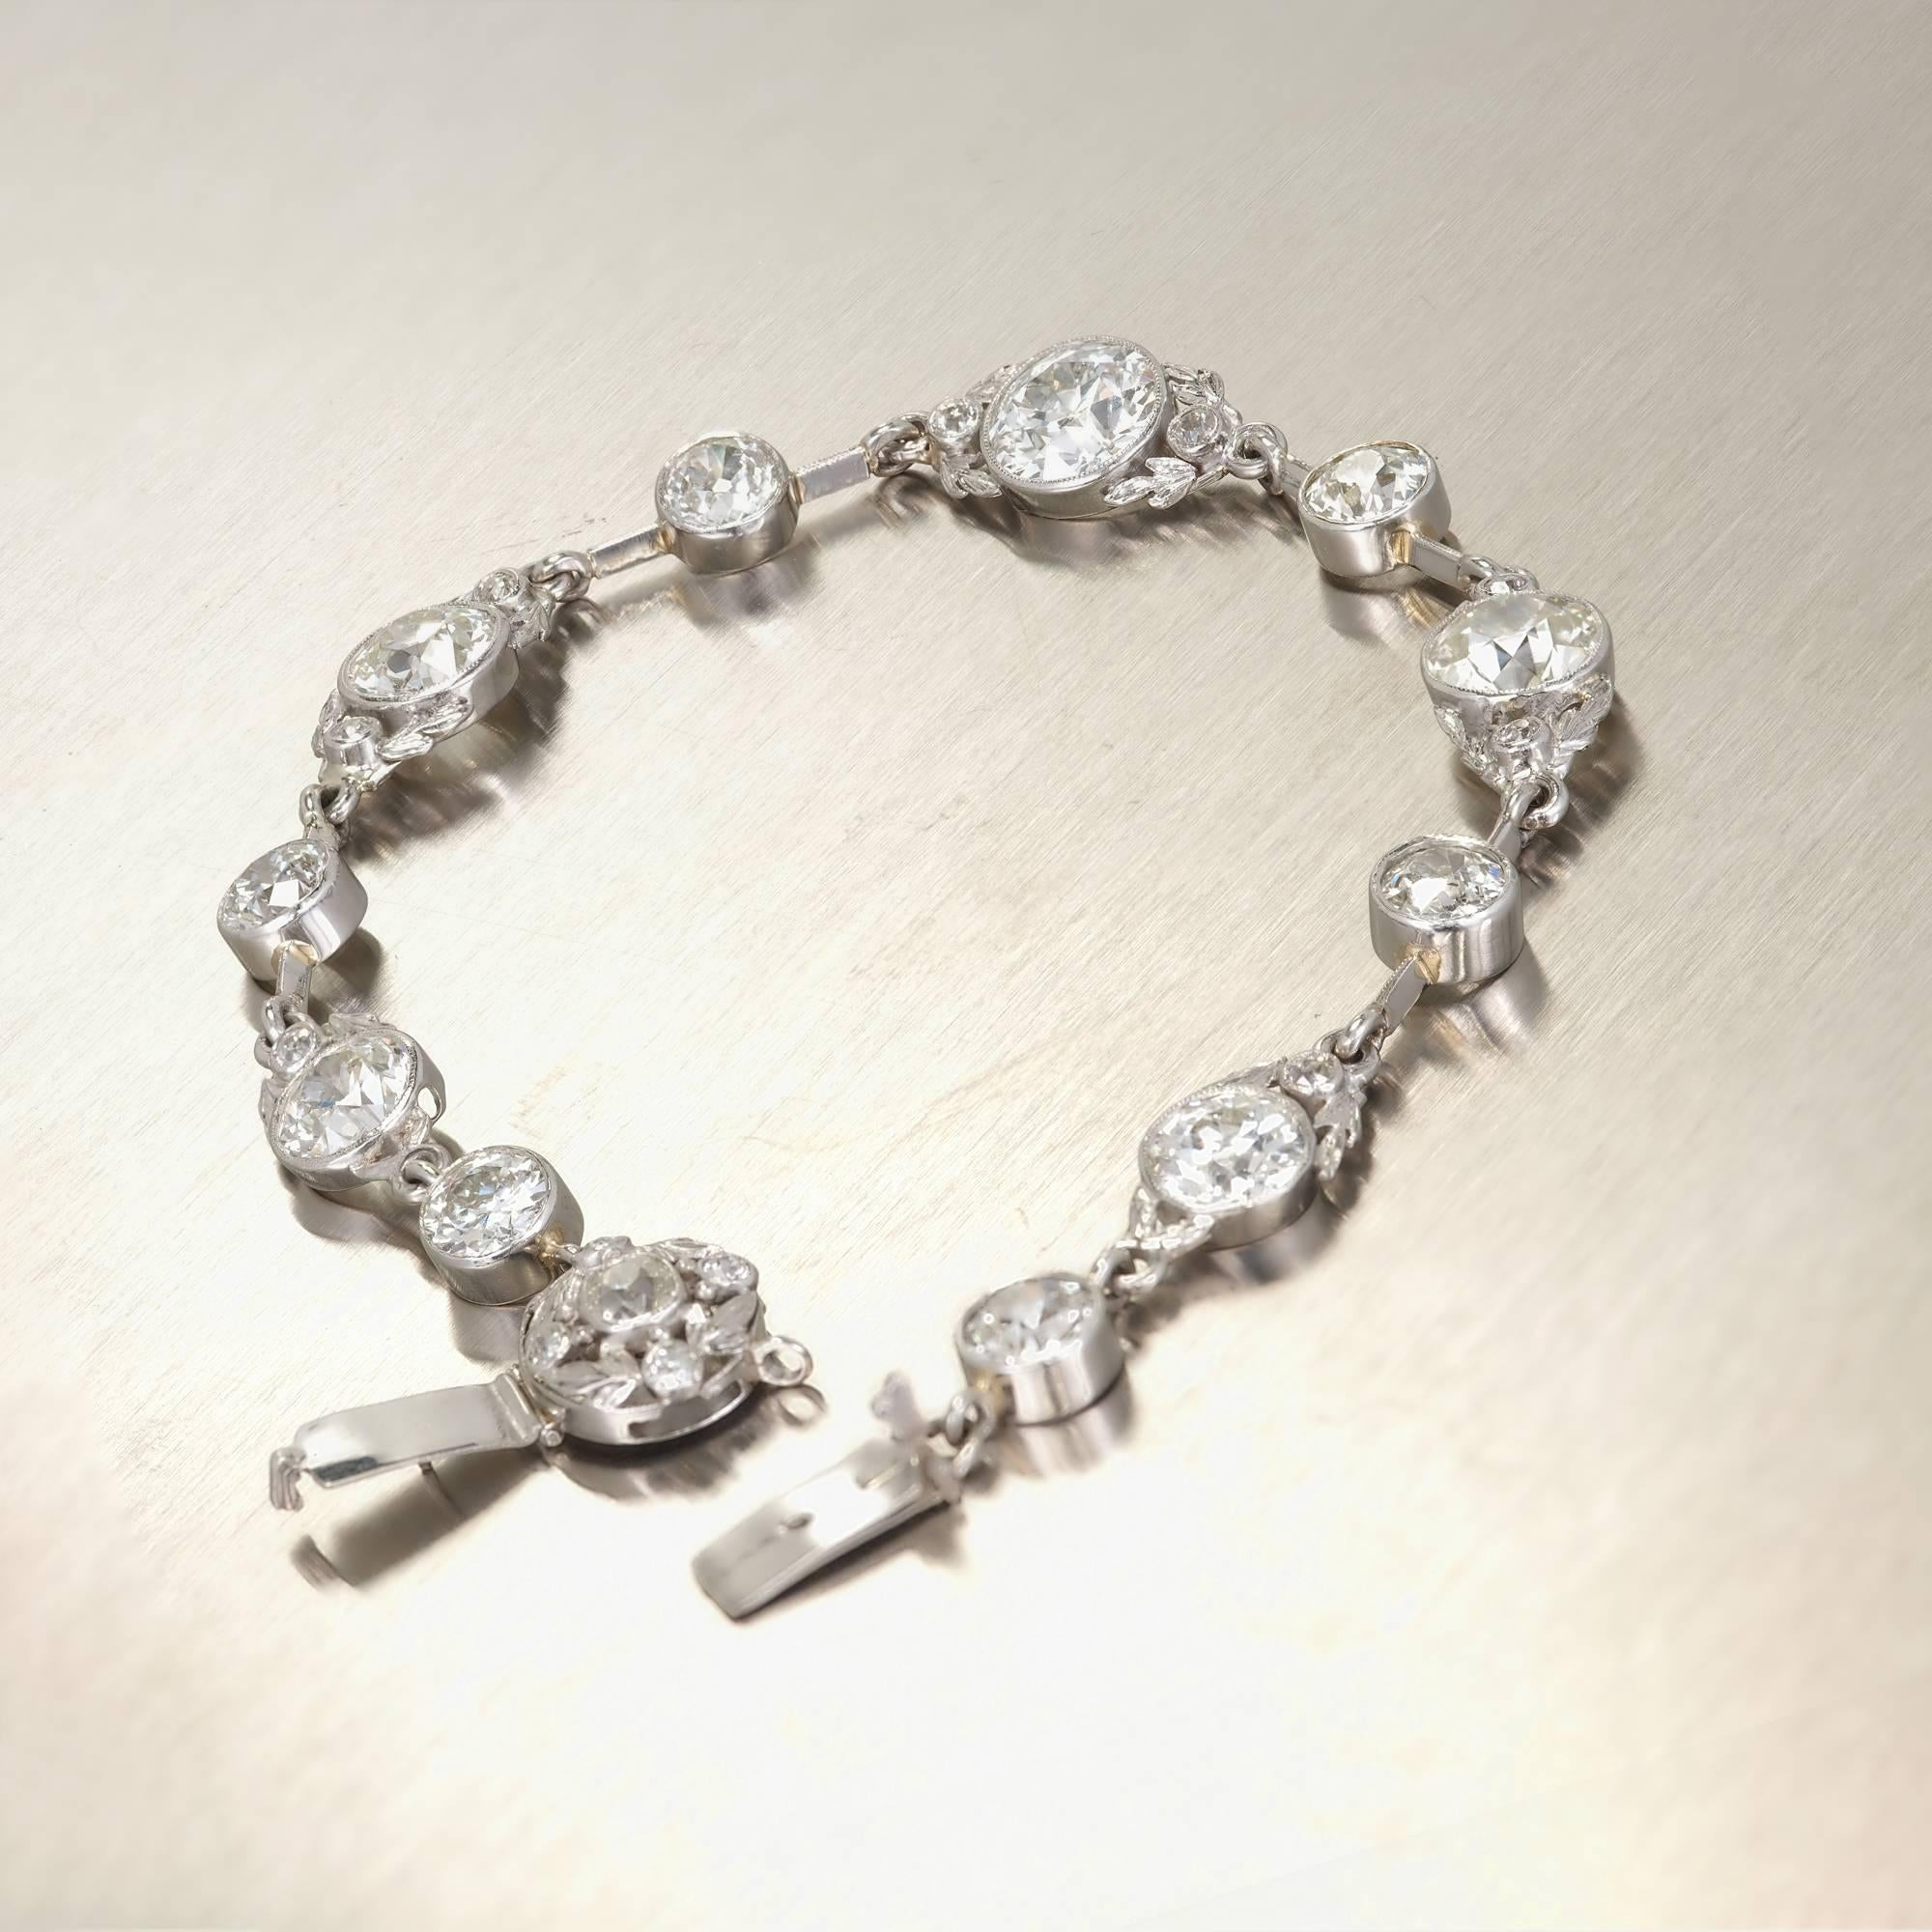 marquise set carats pin in diamond weighing diamonds with bracelet shaped impressive and pear